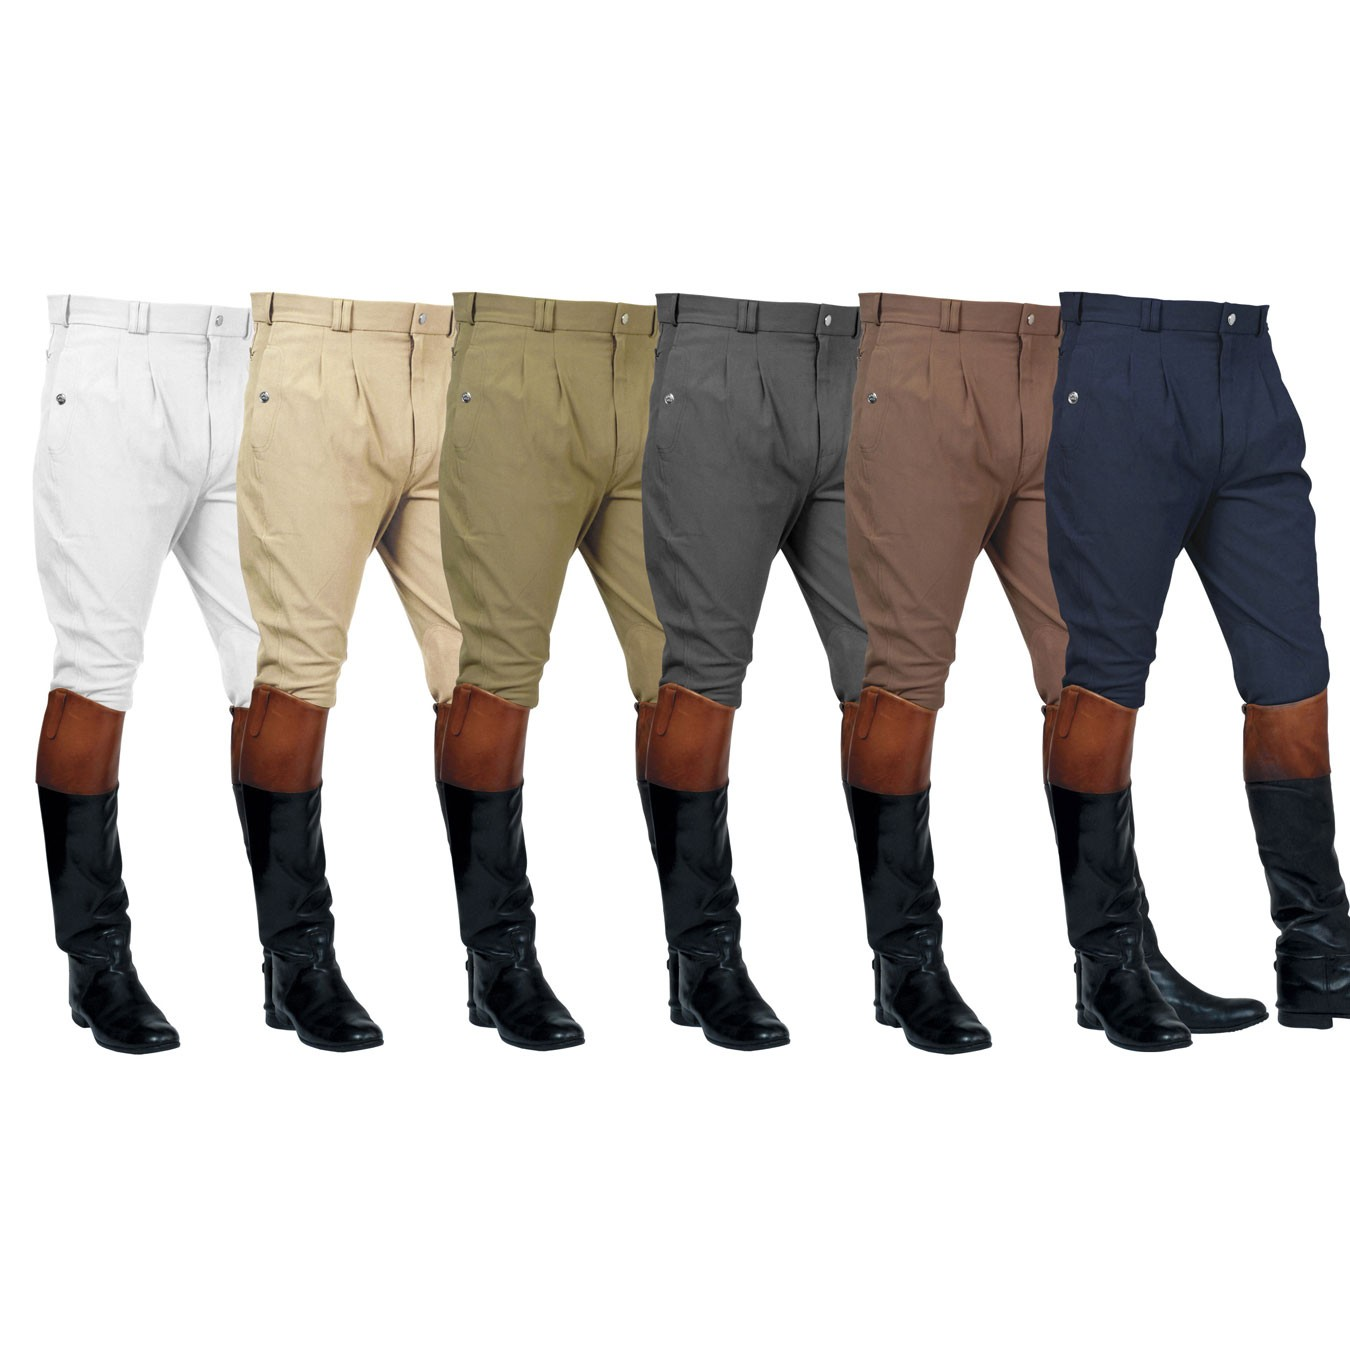 Mark Todd  Mens Auckland Pleated Front Breeches  - Thomas Irving's equestrian and accessories store  Mark Todd  Mens Auckland Pleated Front Breeches